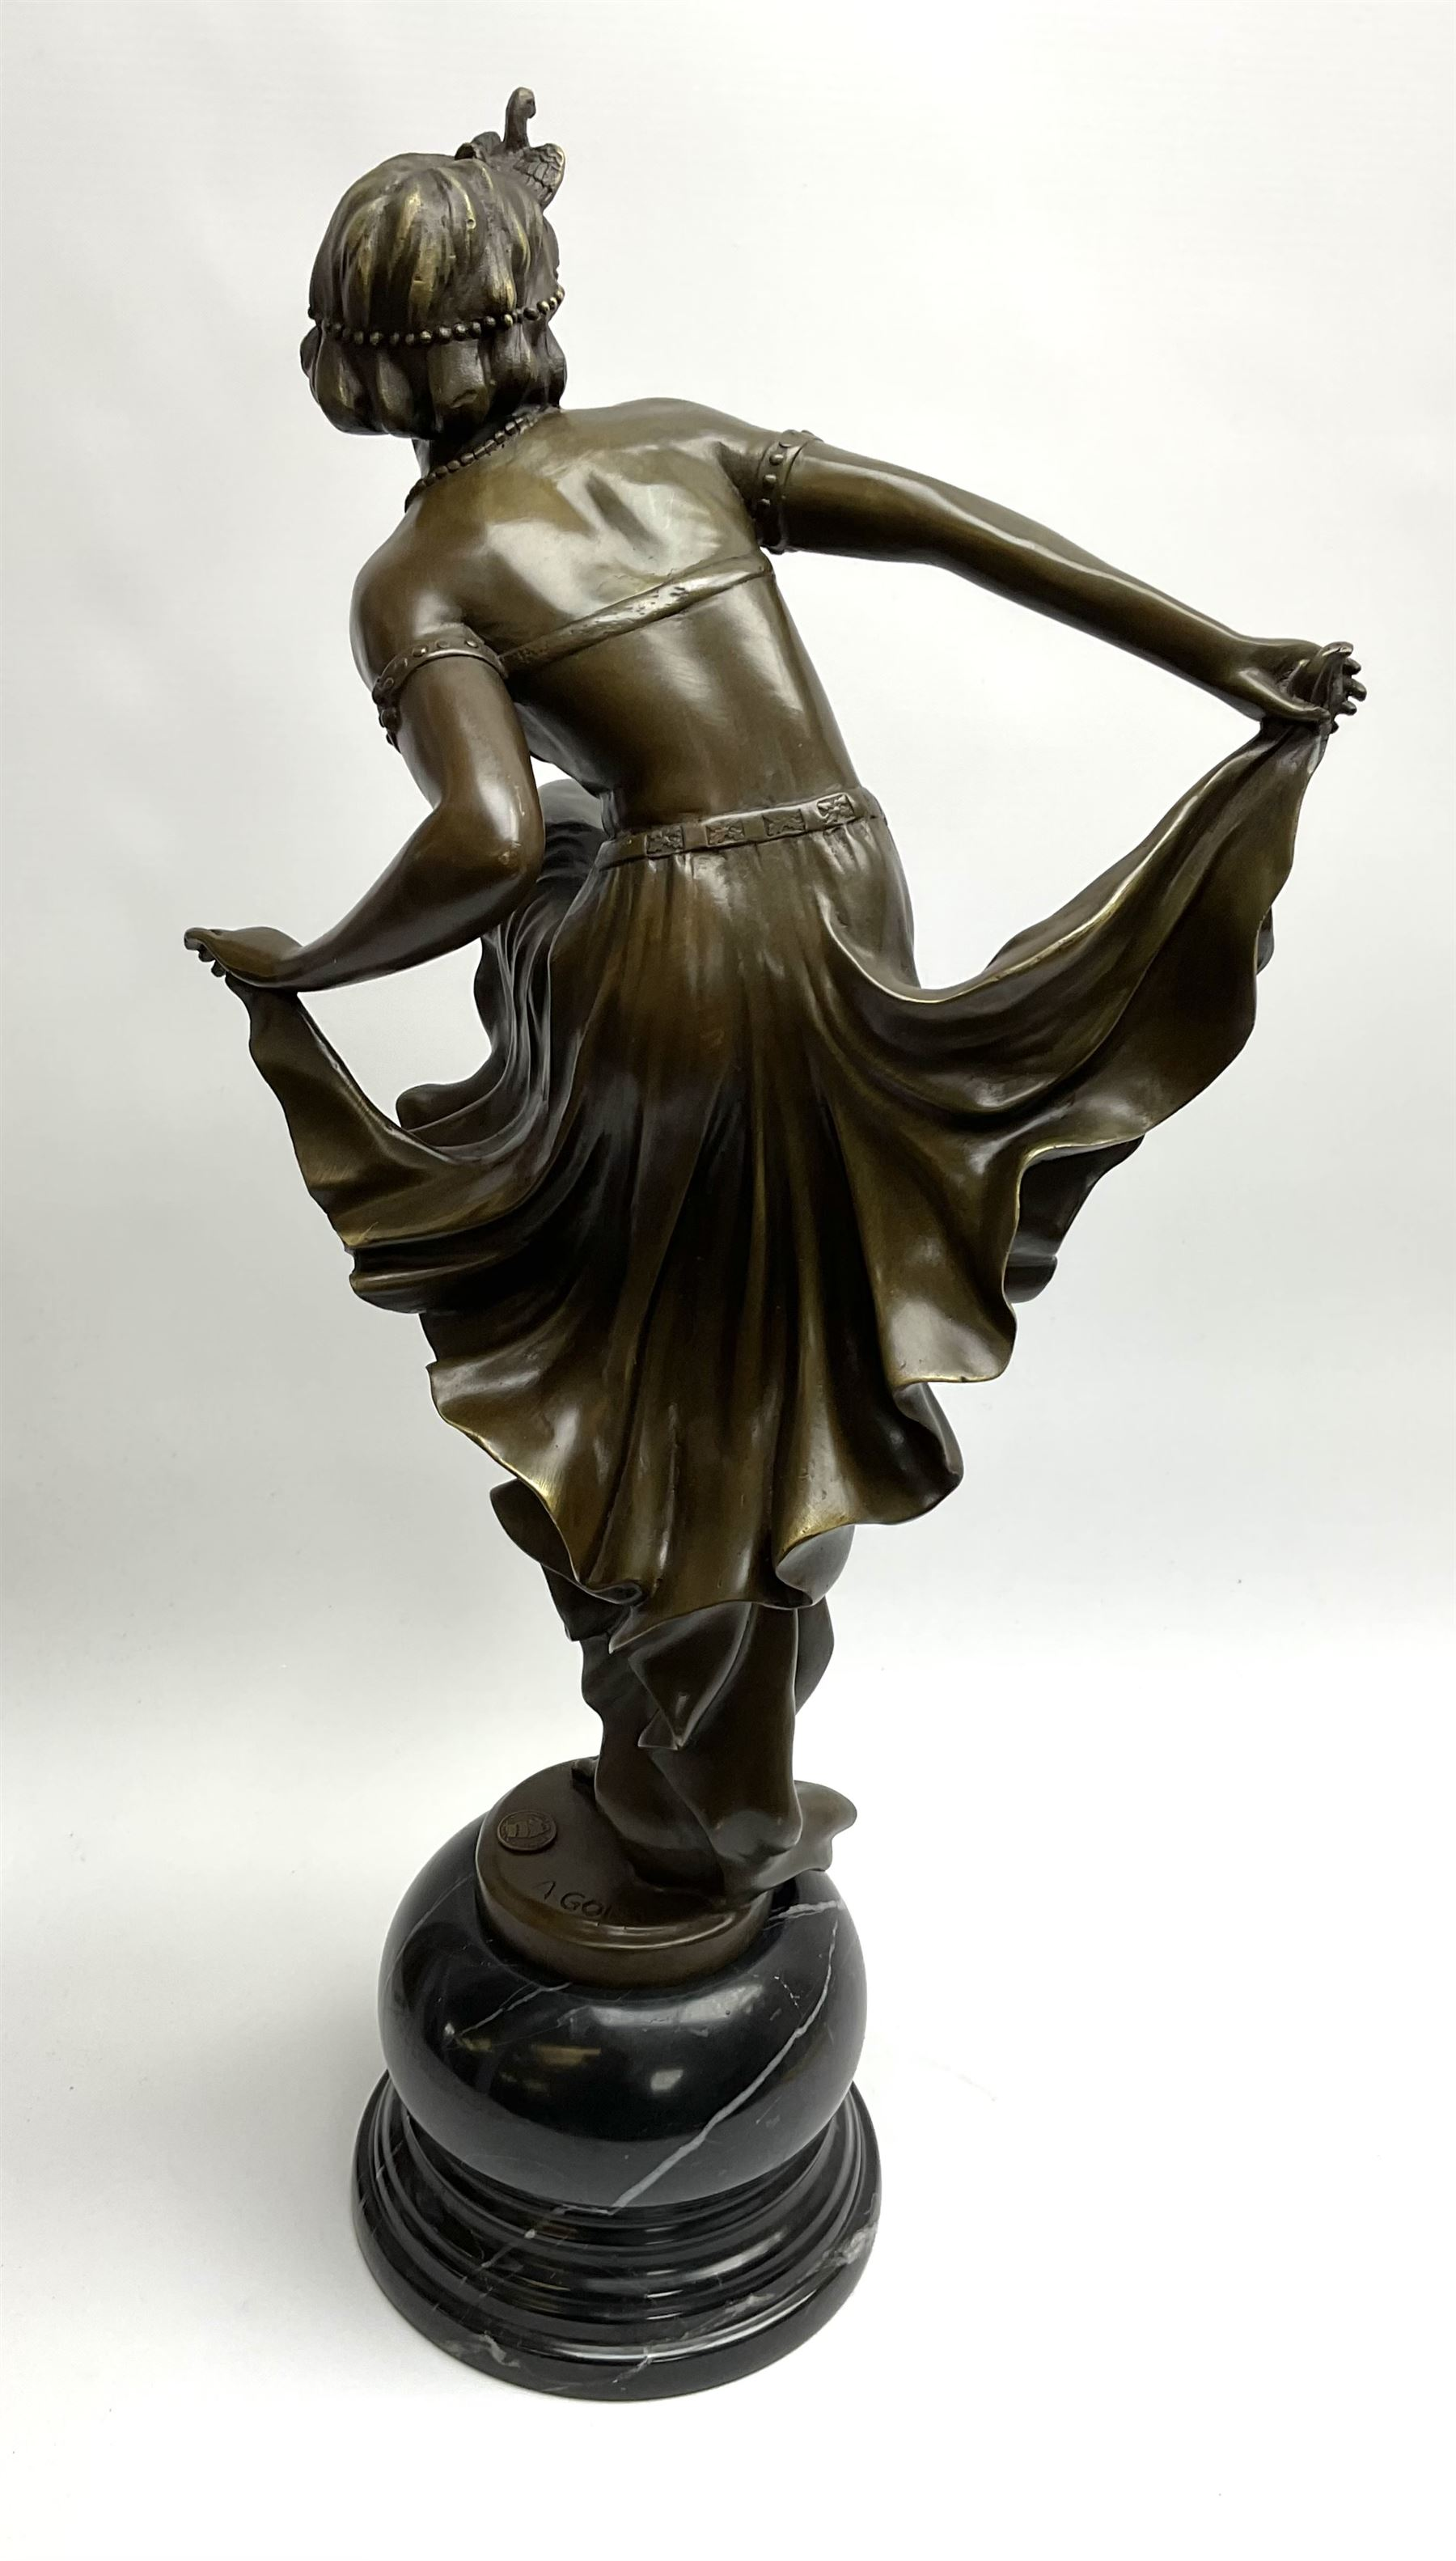 Art Deco style bronze figure of a dancer standing on one leg - Image 4 of 4